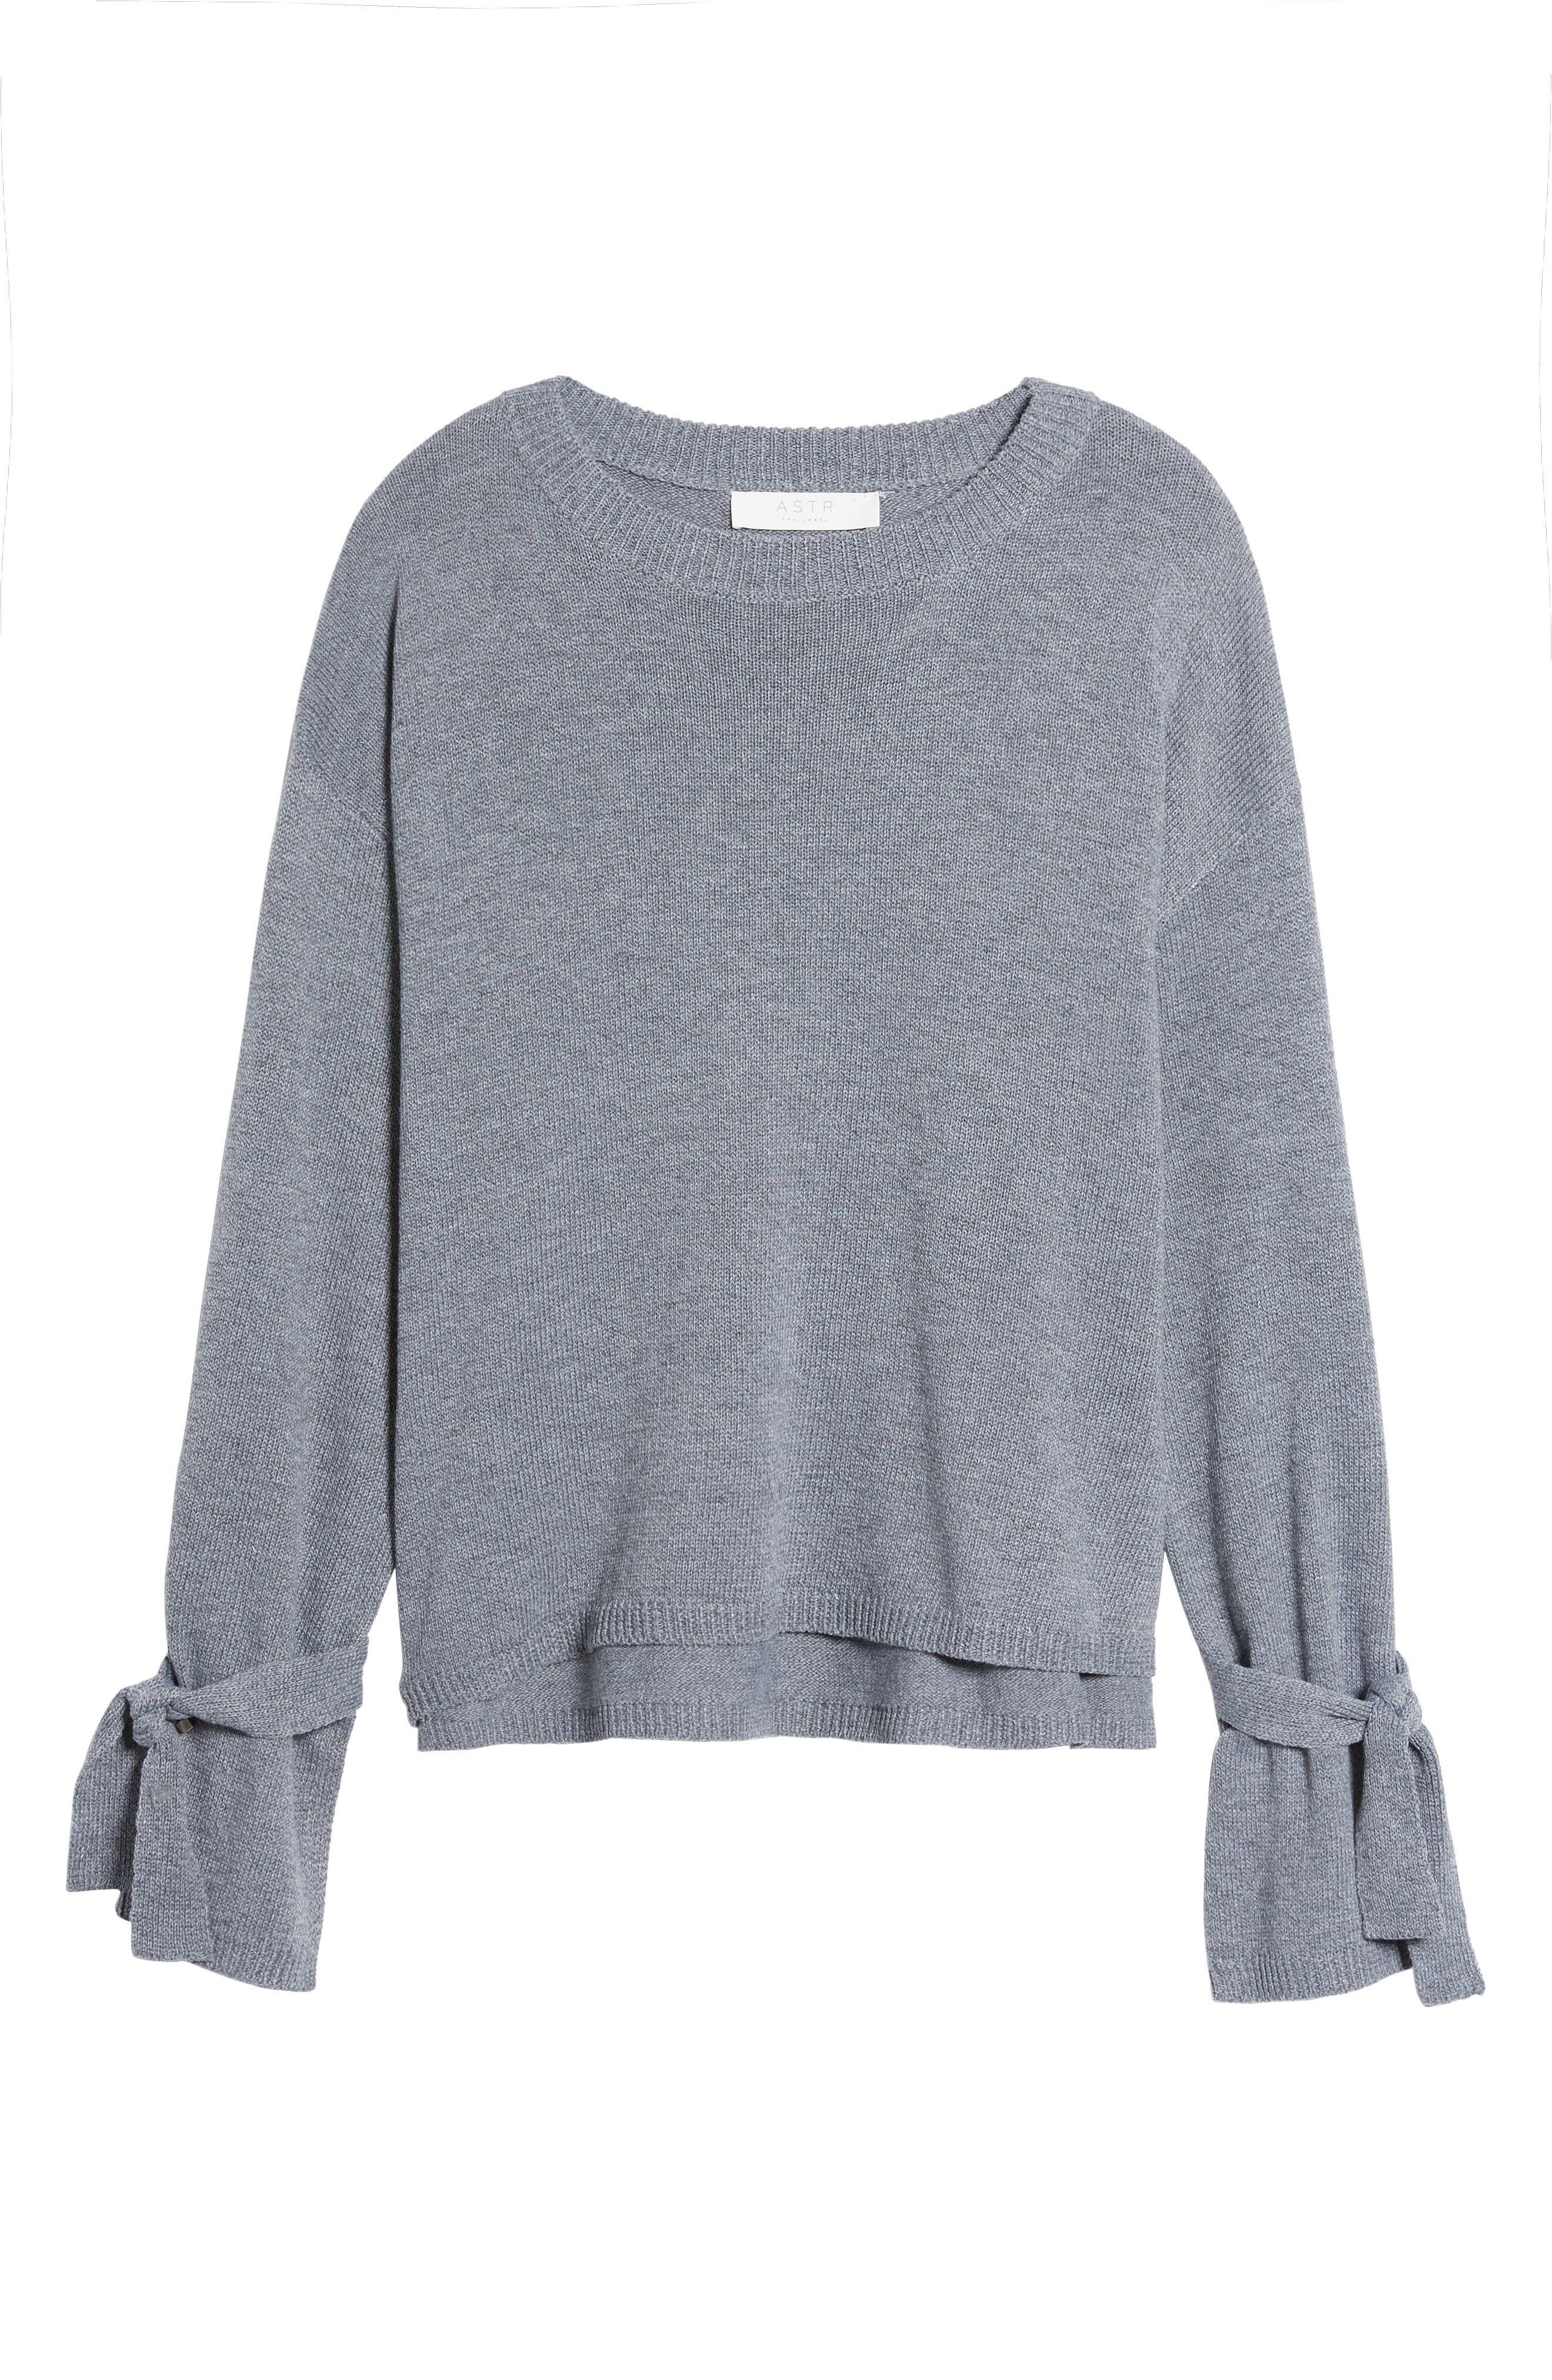 Tie Sleeve Sweater,                             Alternate thumbnail 6, color,                             Heather Grey